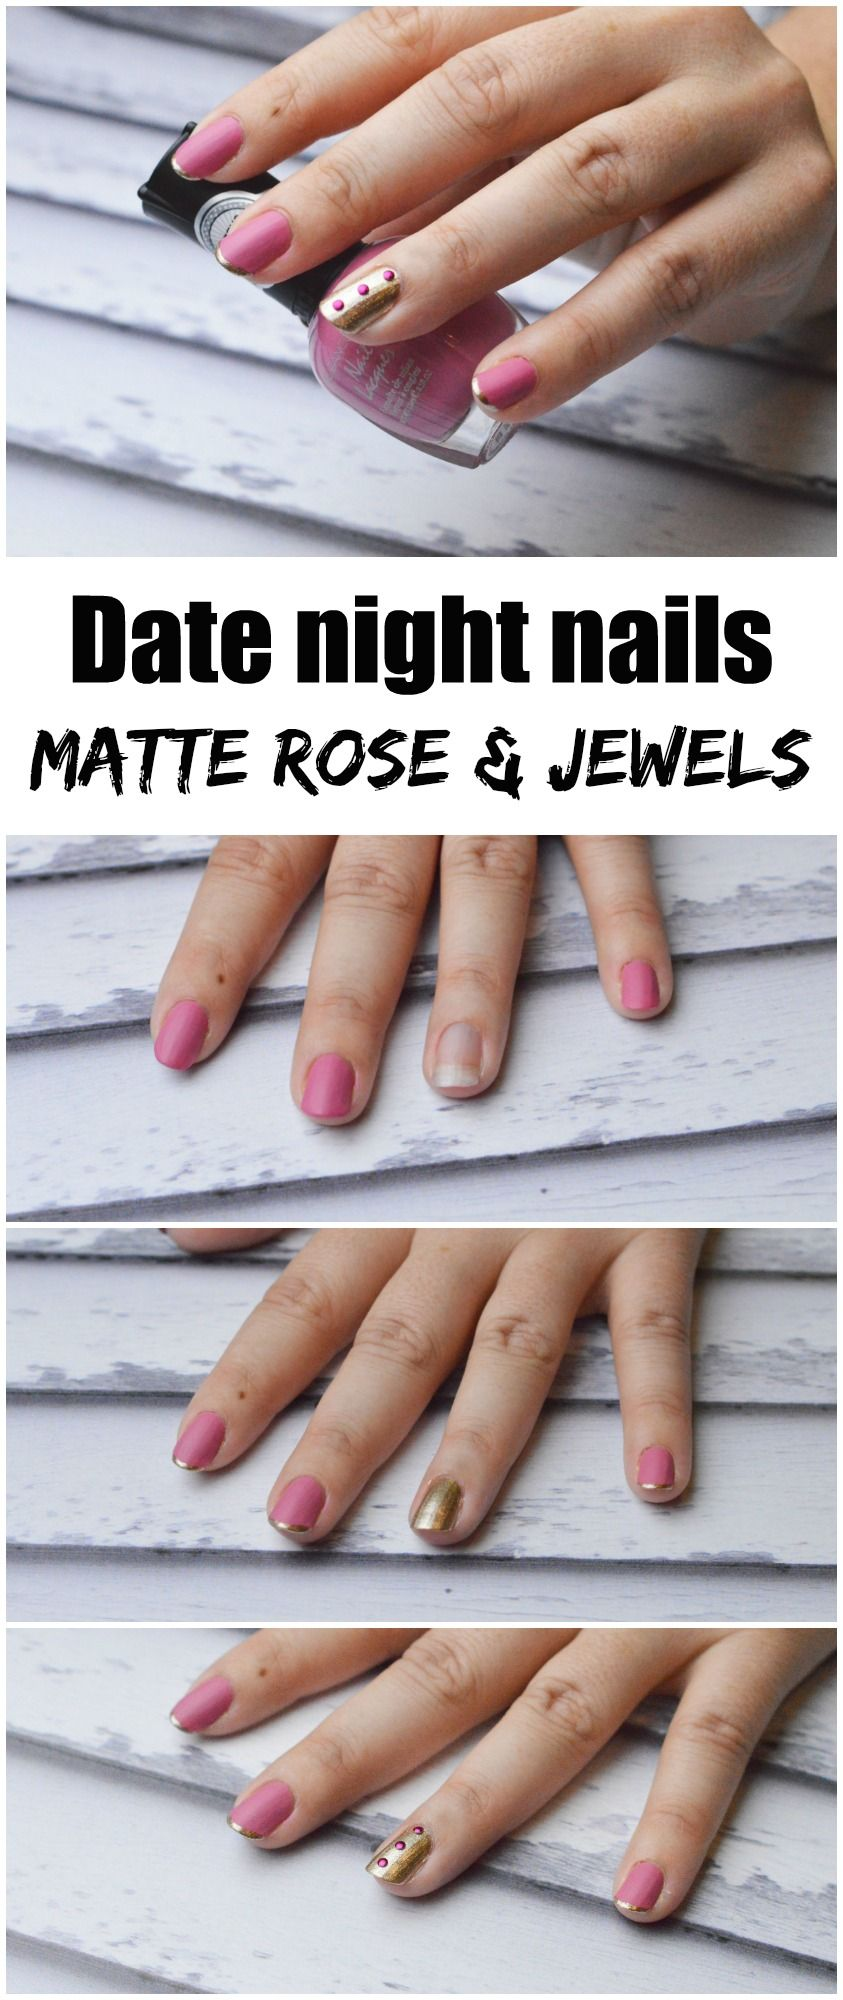 Date Night Nails Matte Rose And Jewels Nail Design Pinterest